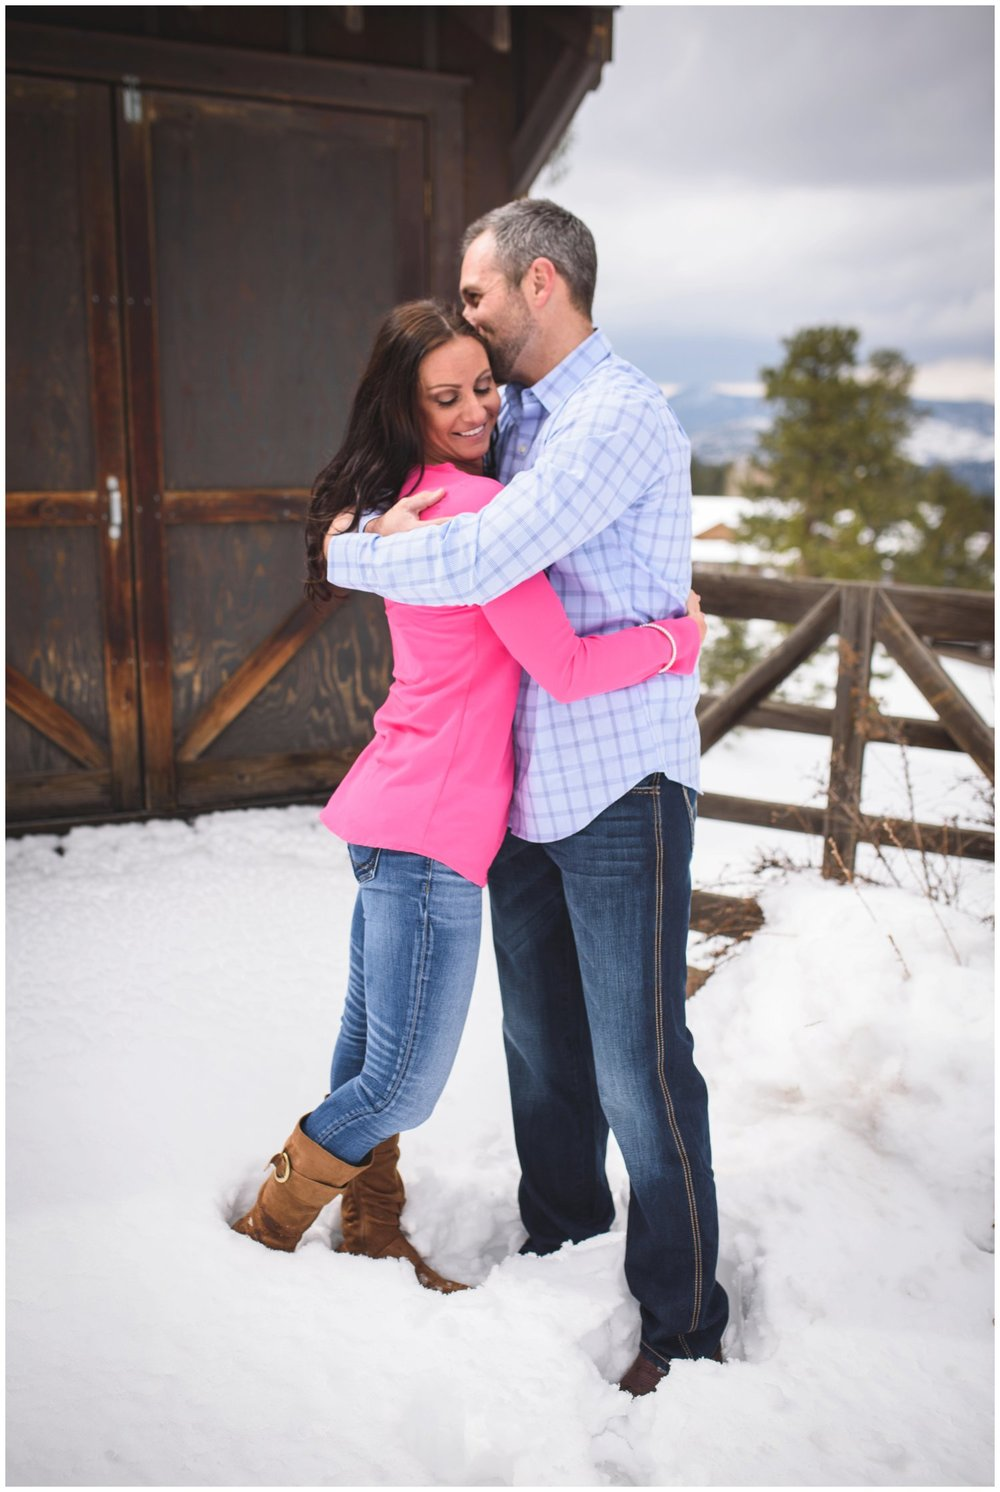 evergreen-colorado-winter-engagement-photography_0004.jpg